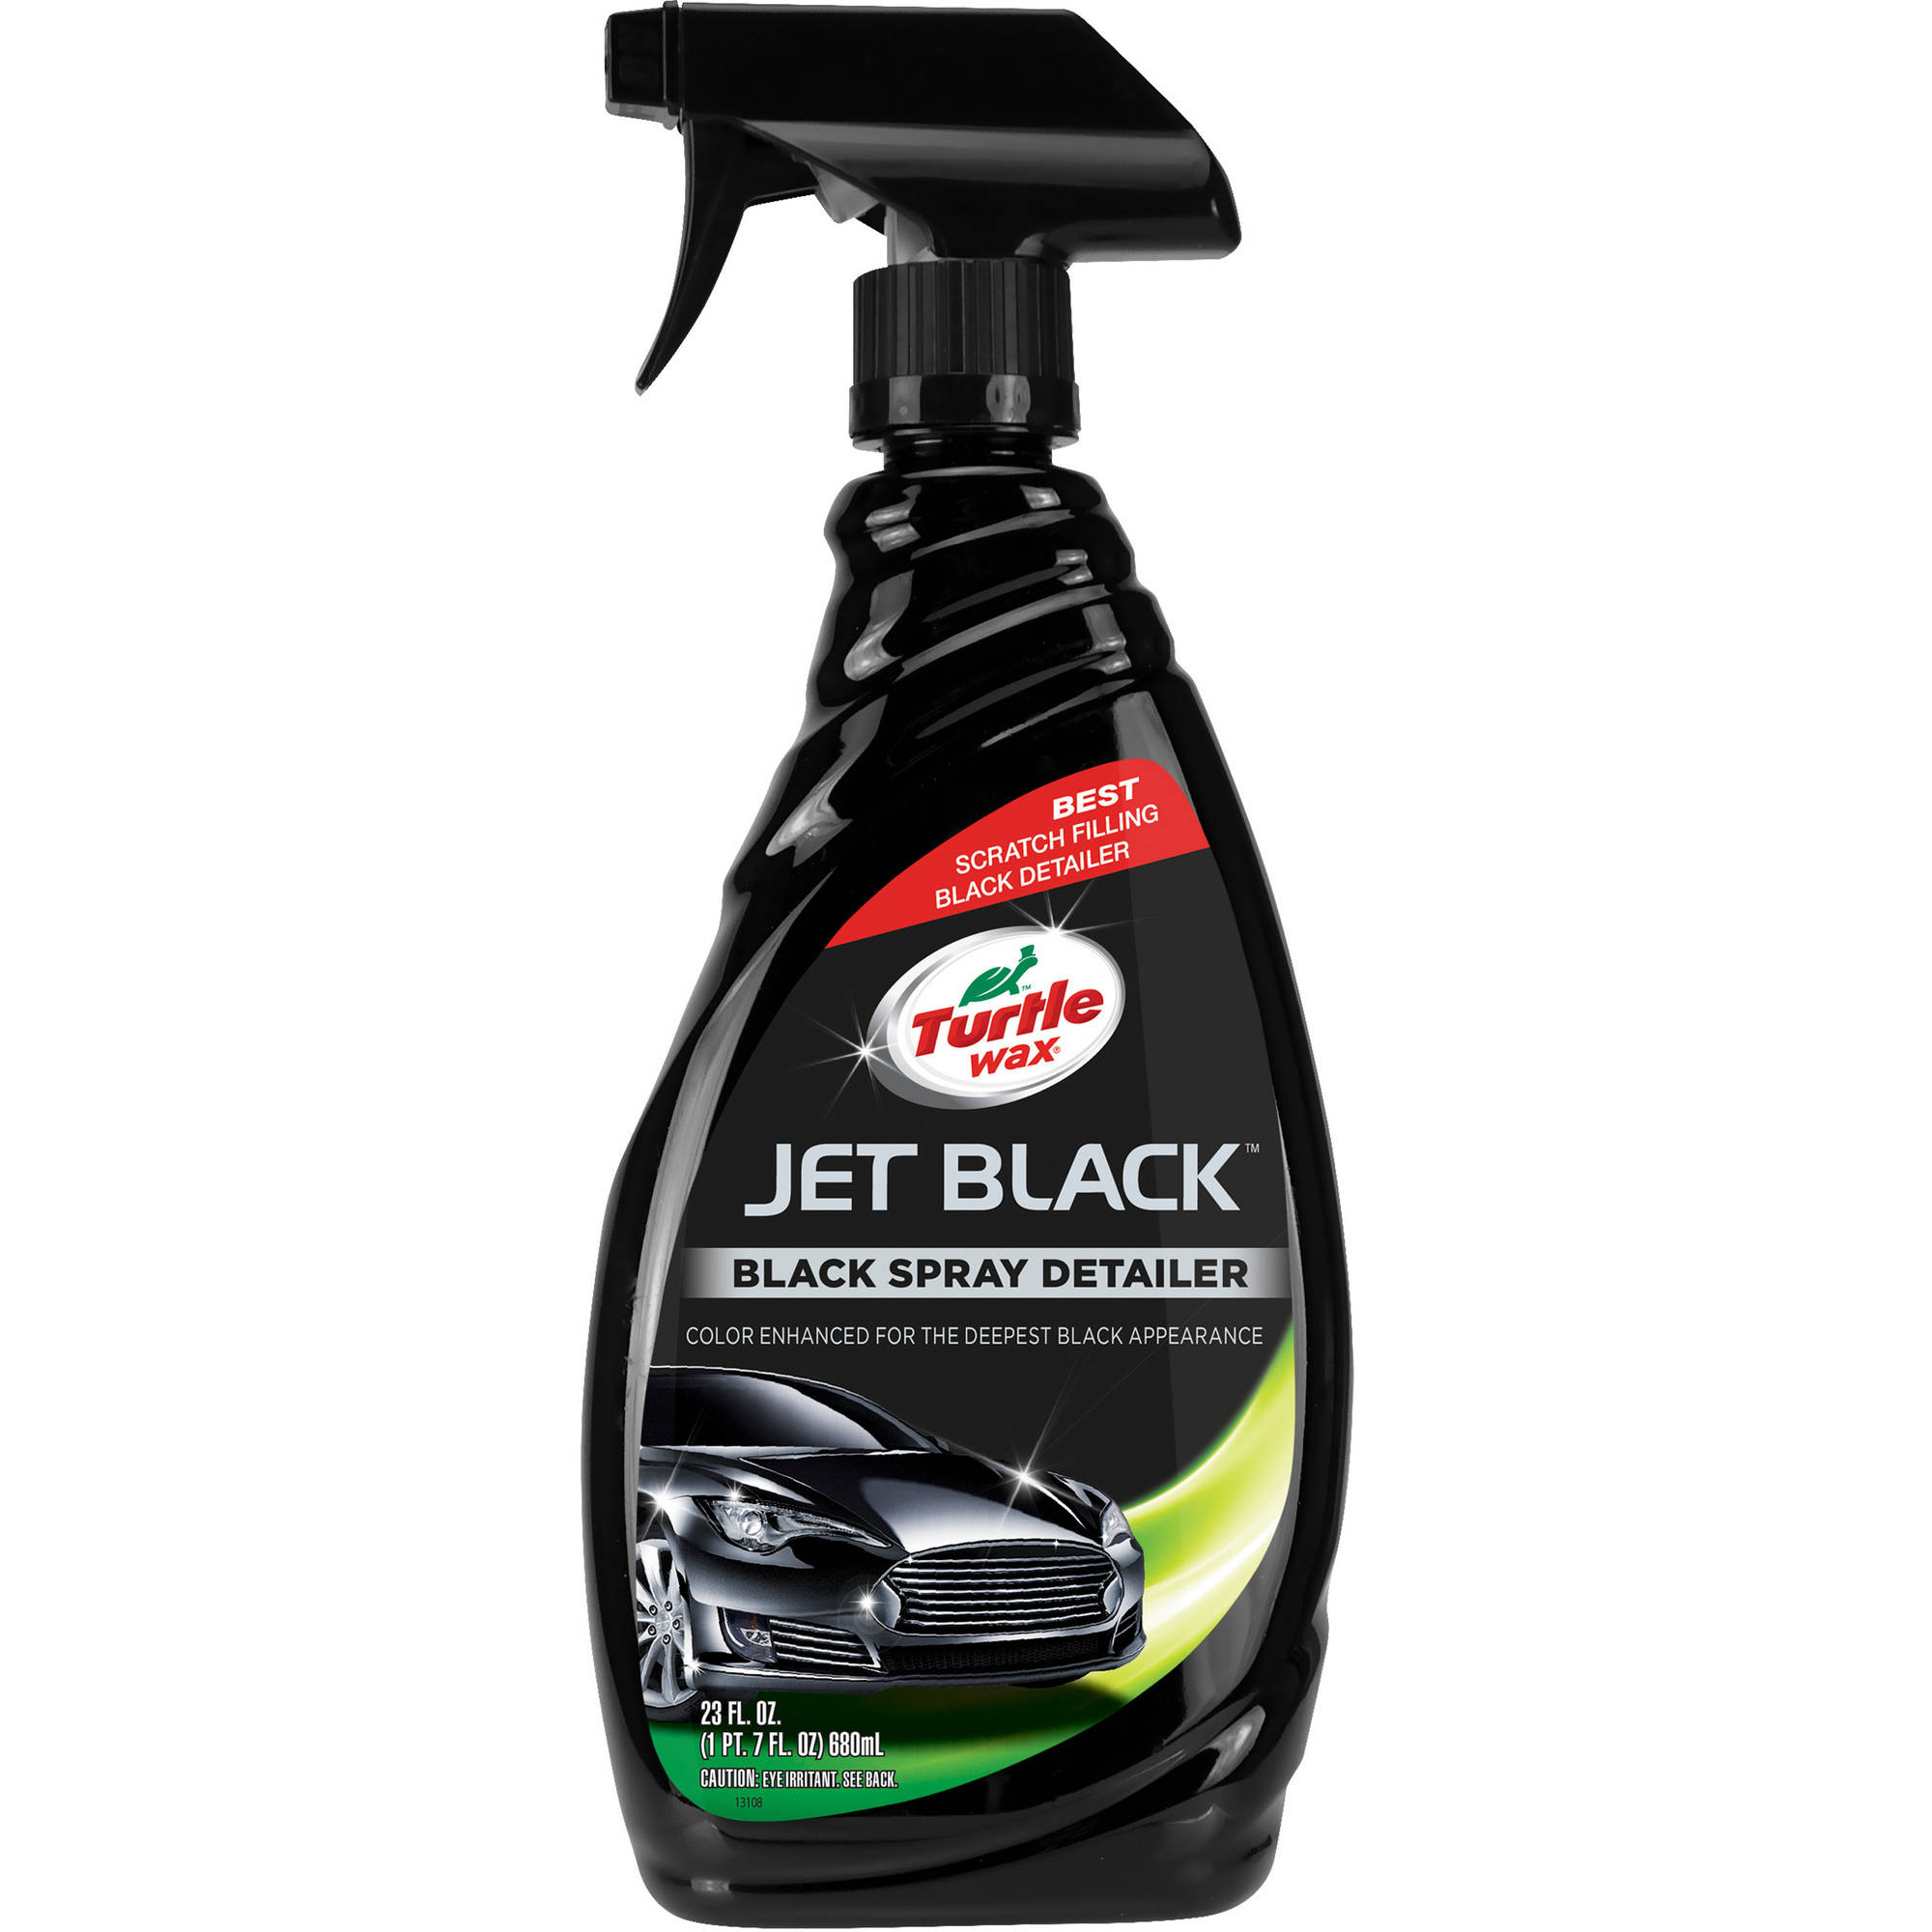 Turtle Wax Black Spray Detailer